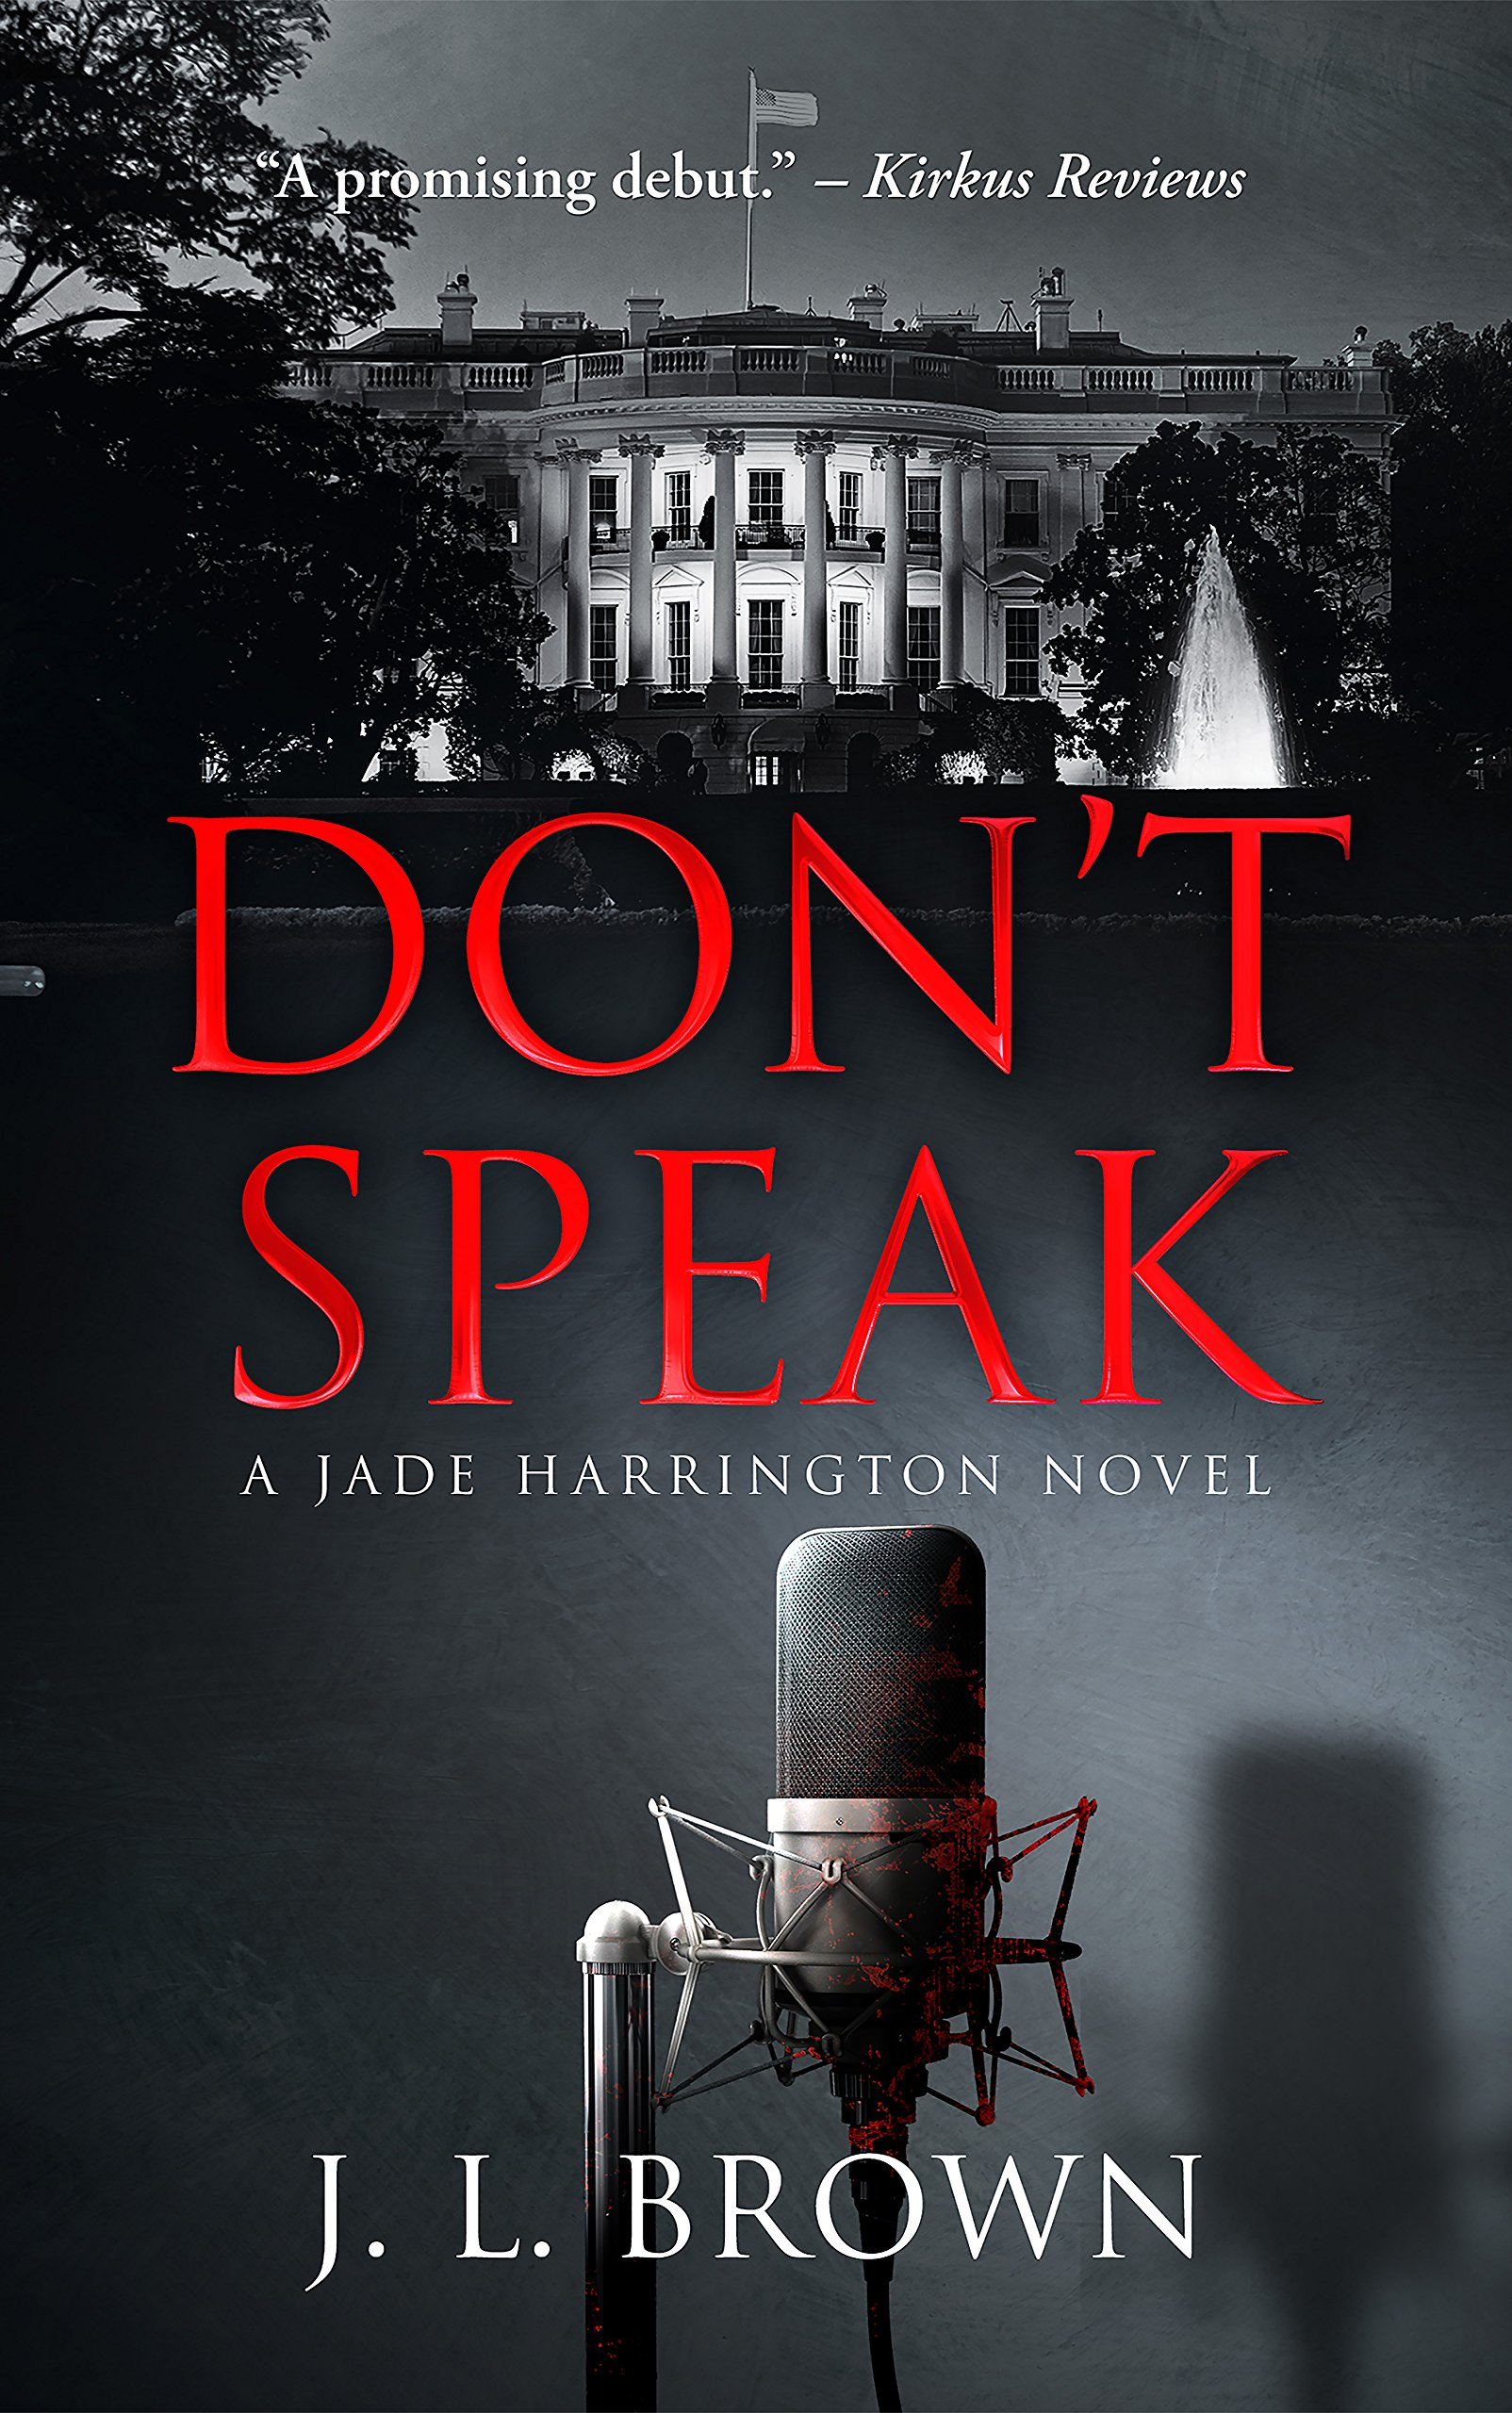 Don't Speak: A Jade Harrington Novel (Jade Harrington Series Book 1)